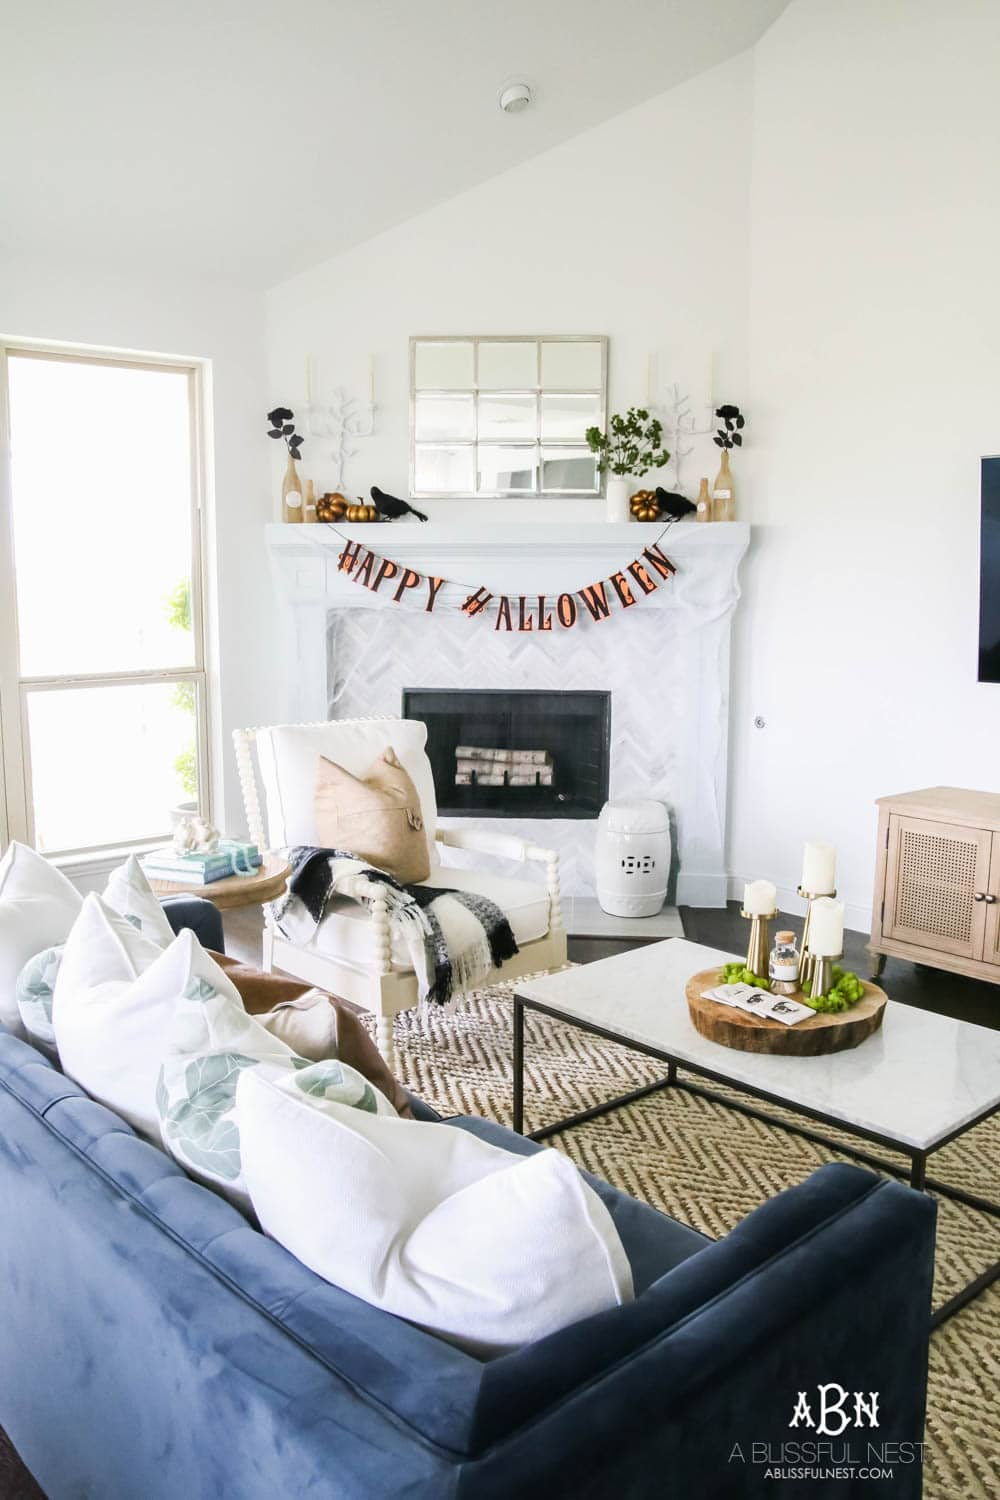 Tips and tricks to have your home ready for Halloween and the essential items you need to create a warm and inviting Halloween party. #ad #worldmarket #discoverworldmarket